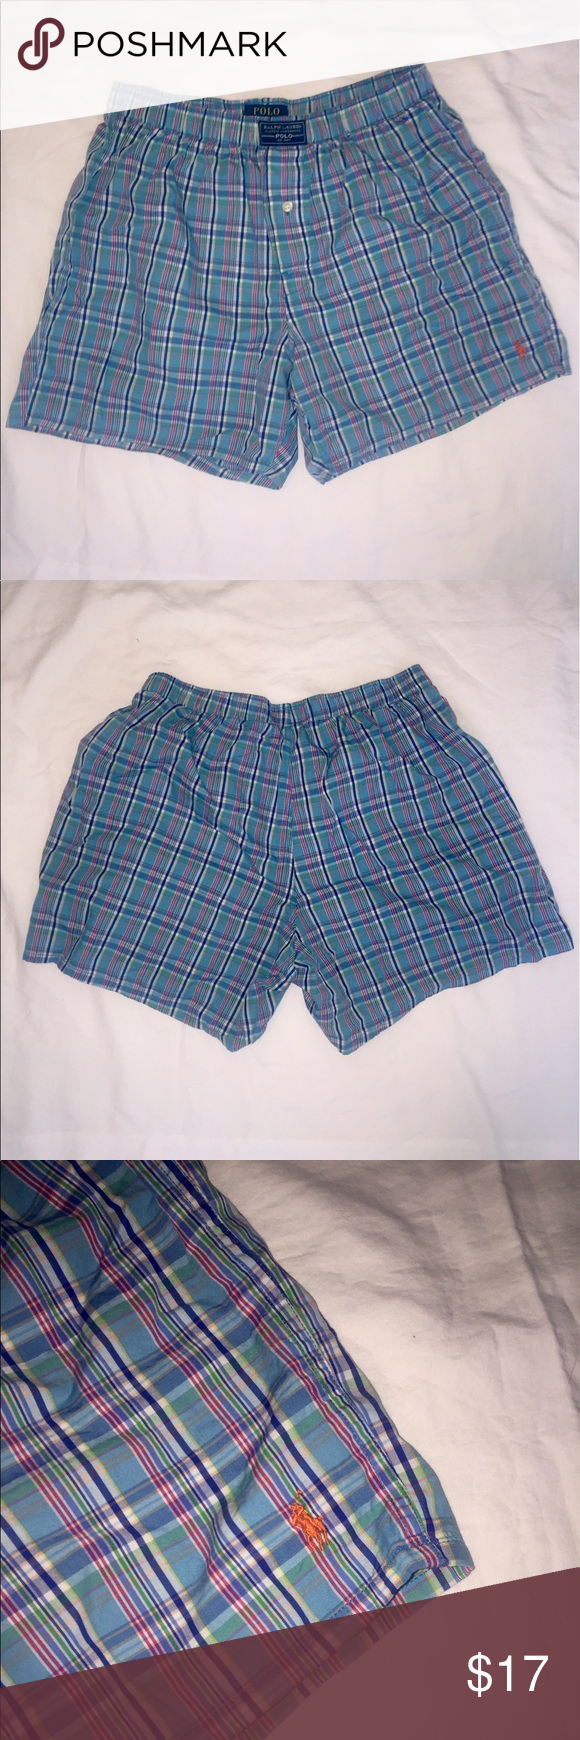 Polo Ralph Lauren boxer shorts I used these as sleep shorts about 2 times. Perfect condition  I have plenty more and just love the look of boxers on women. But if a man wants them that's perfectly fine too!! Might as well be new. Polo by Ralph Lauren Intimates & Sleepwear